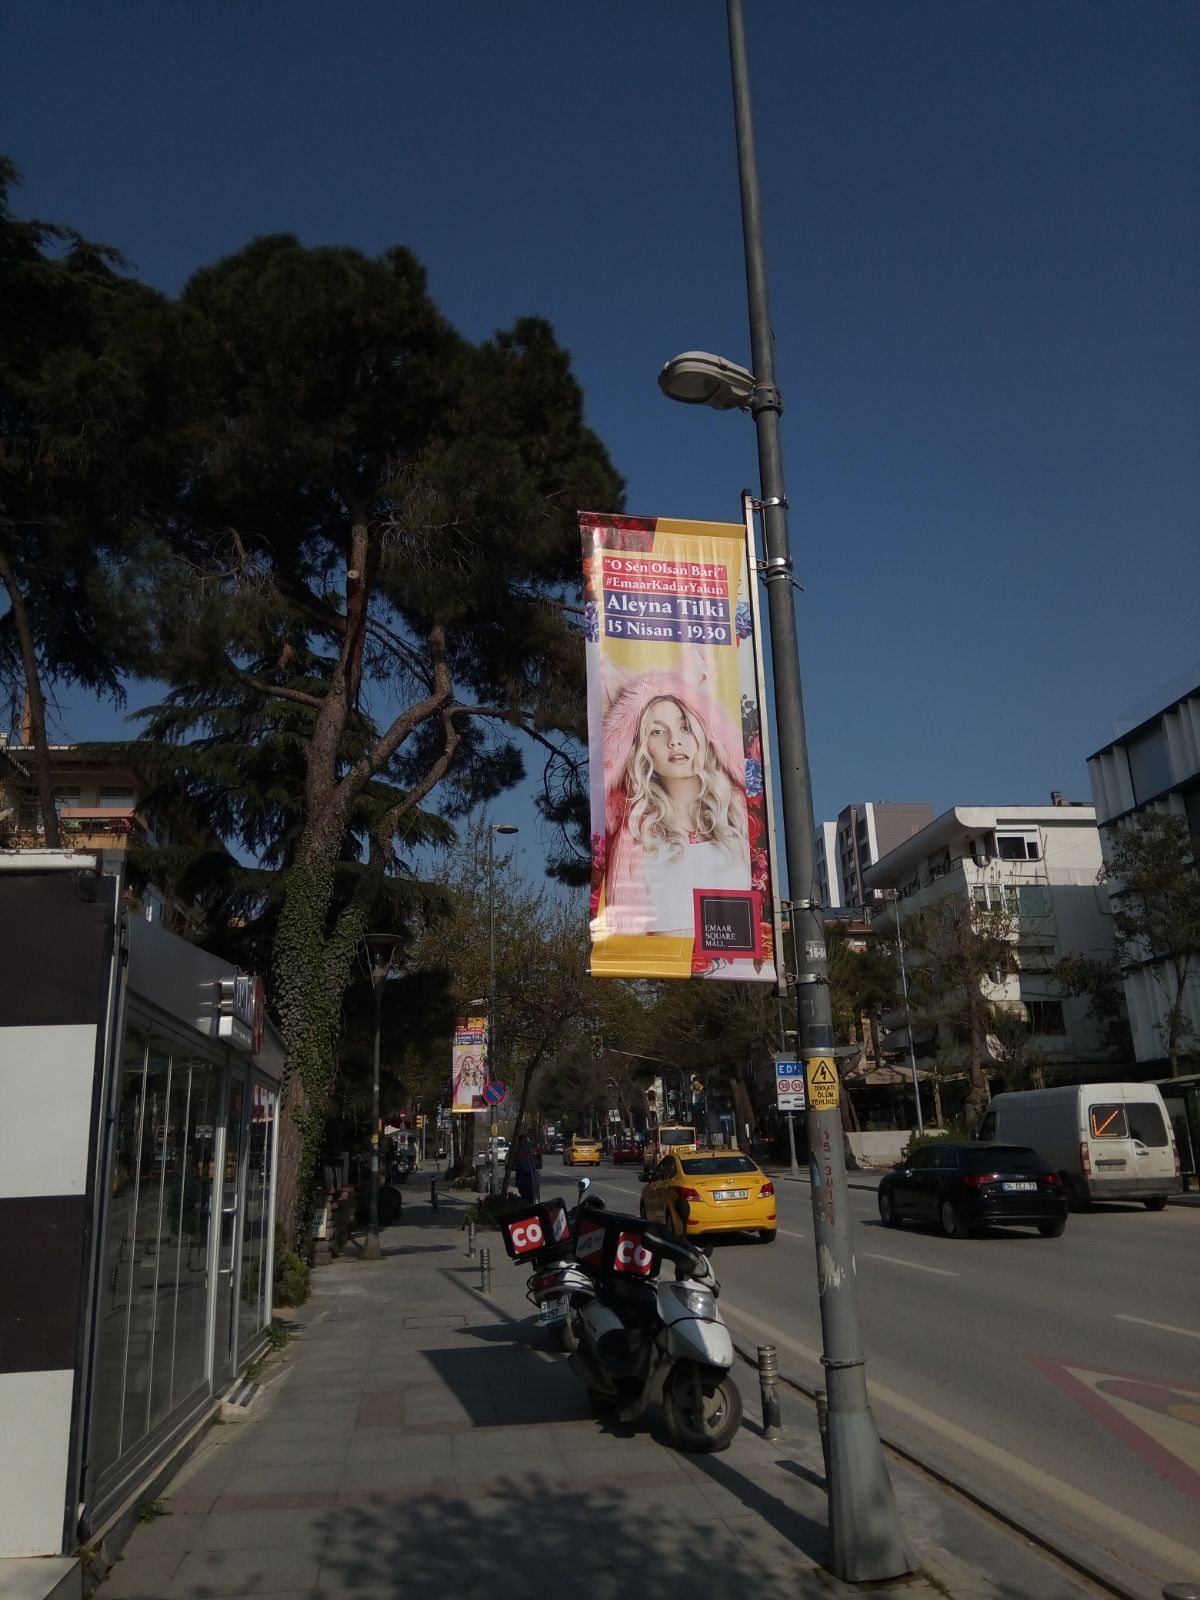 Emaar Square Mall Aleyna Tilki Street Pole Banner Pole Banners Street Banner